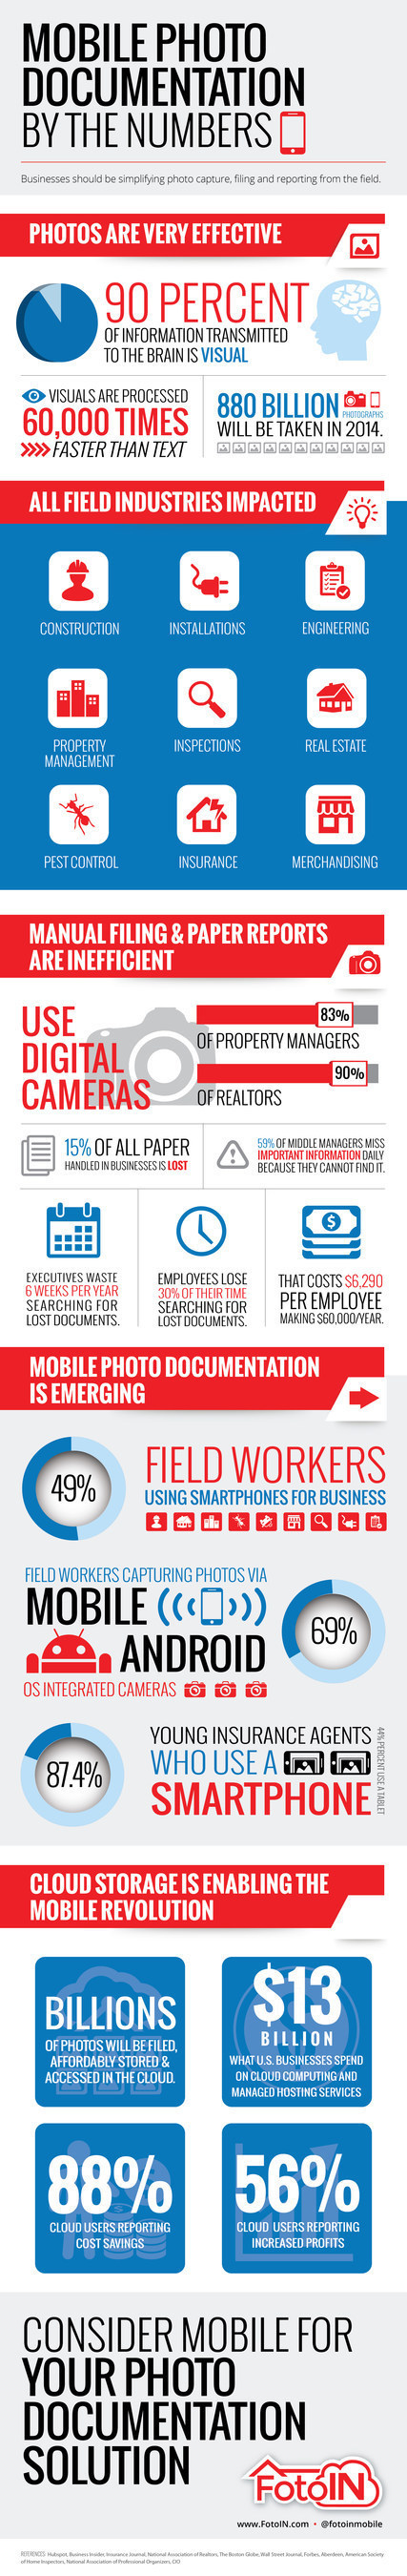 Mobile Photo Documentation by the Numbers